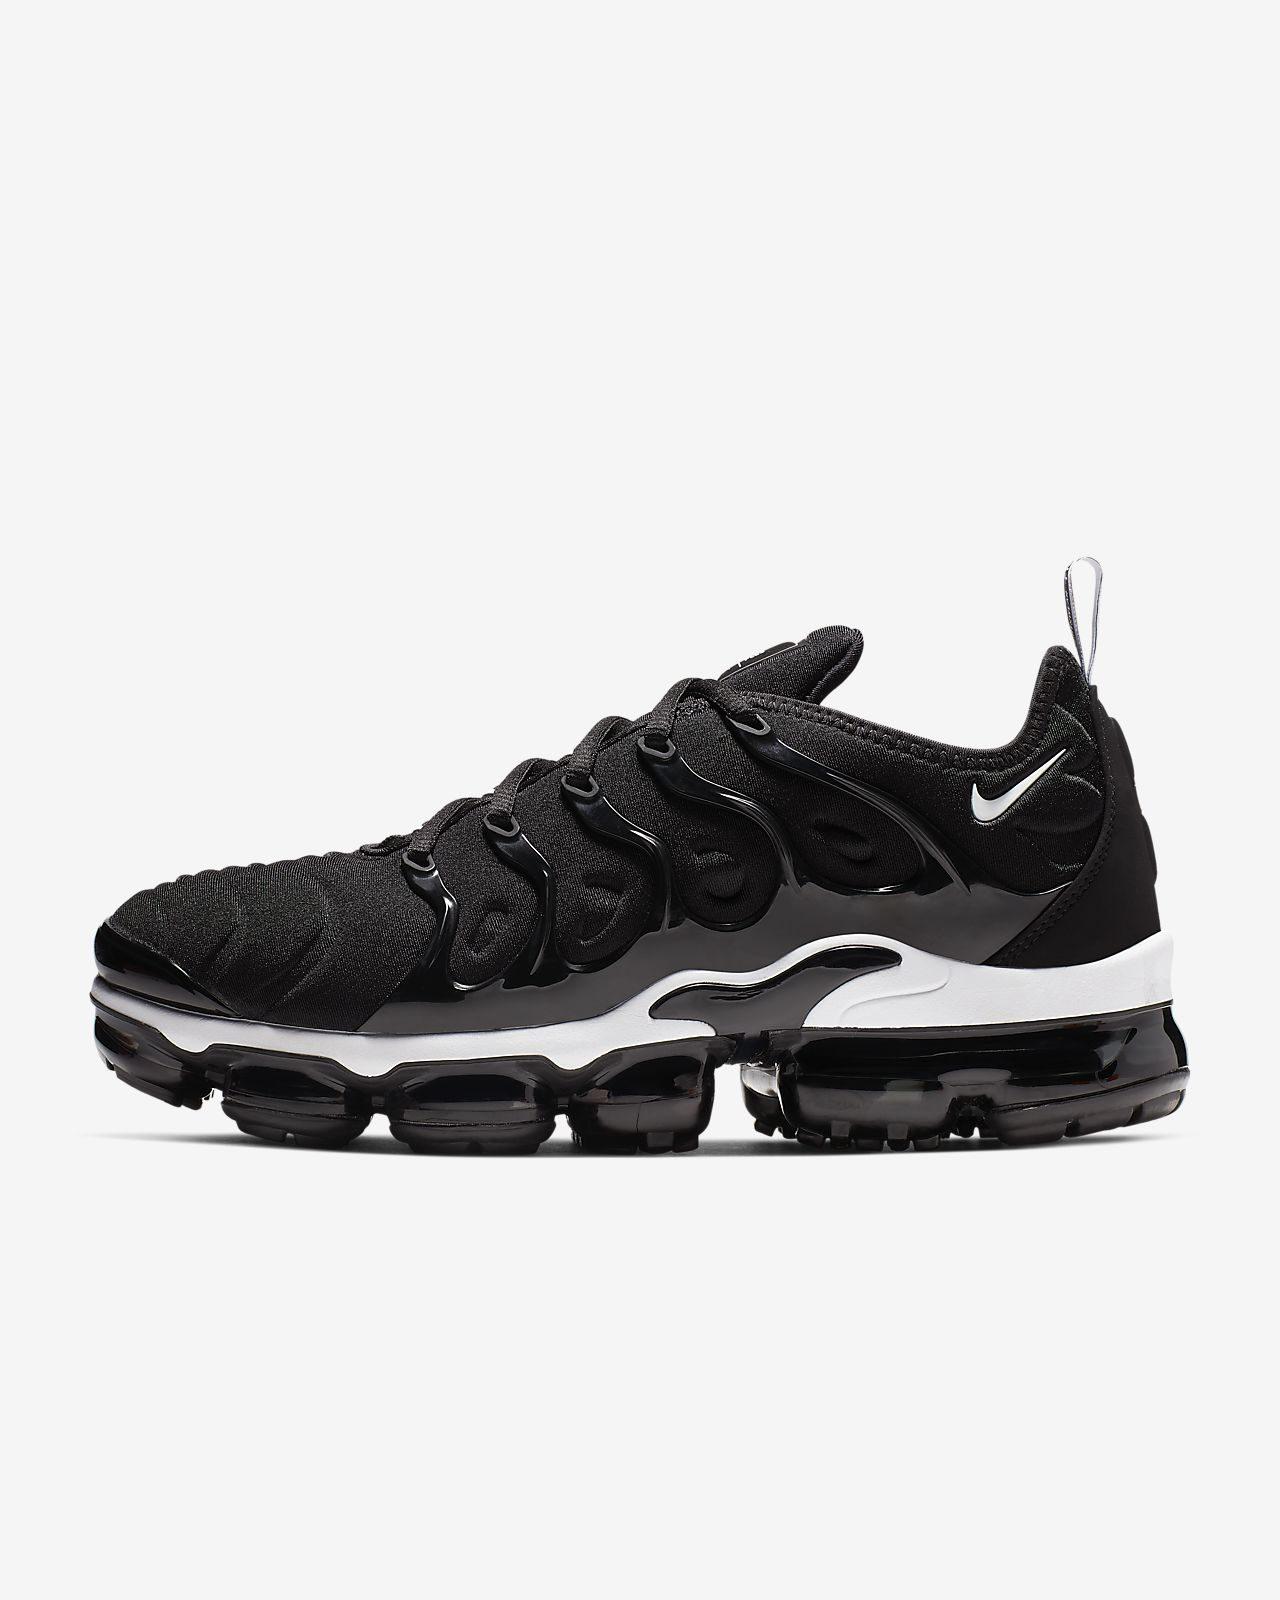 best service 9d6ee e51f5 ... Nike Air VaporMax Plus Mens Shoe